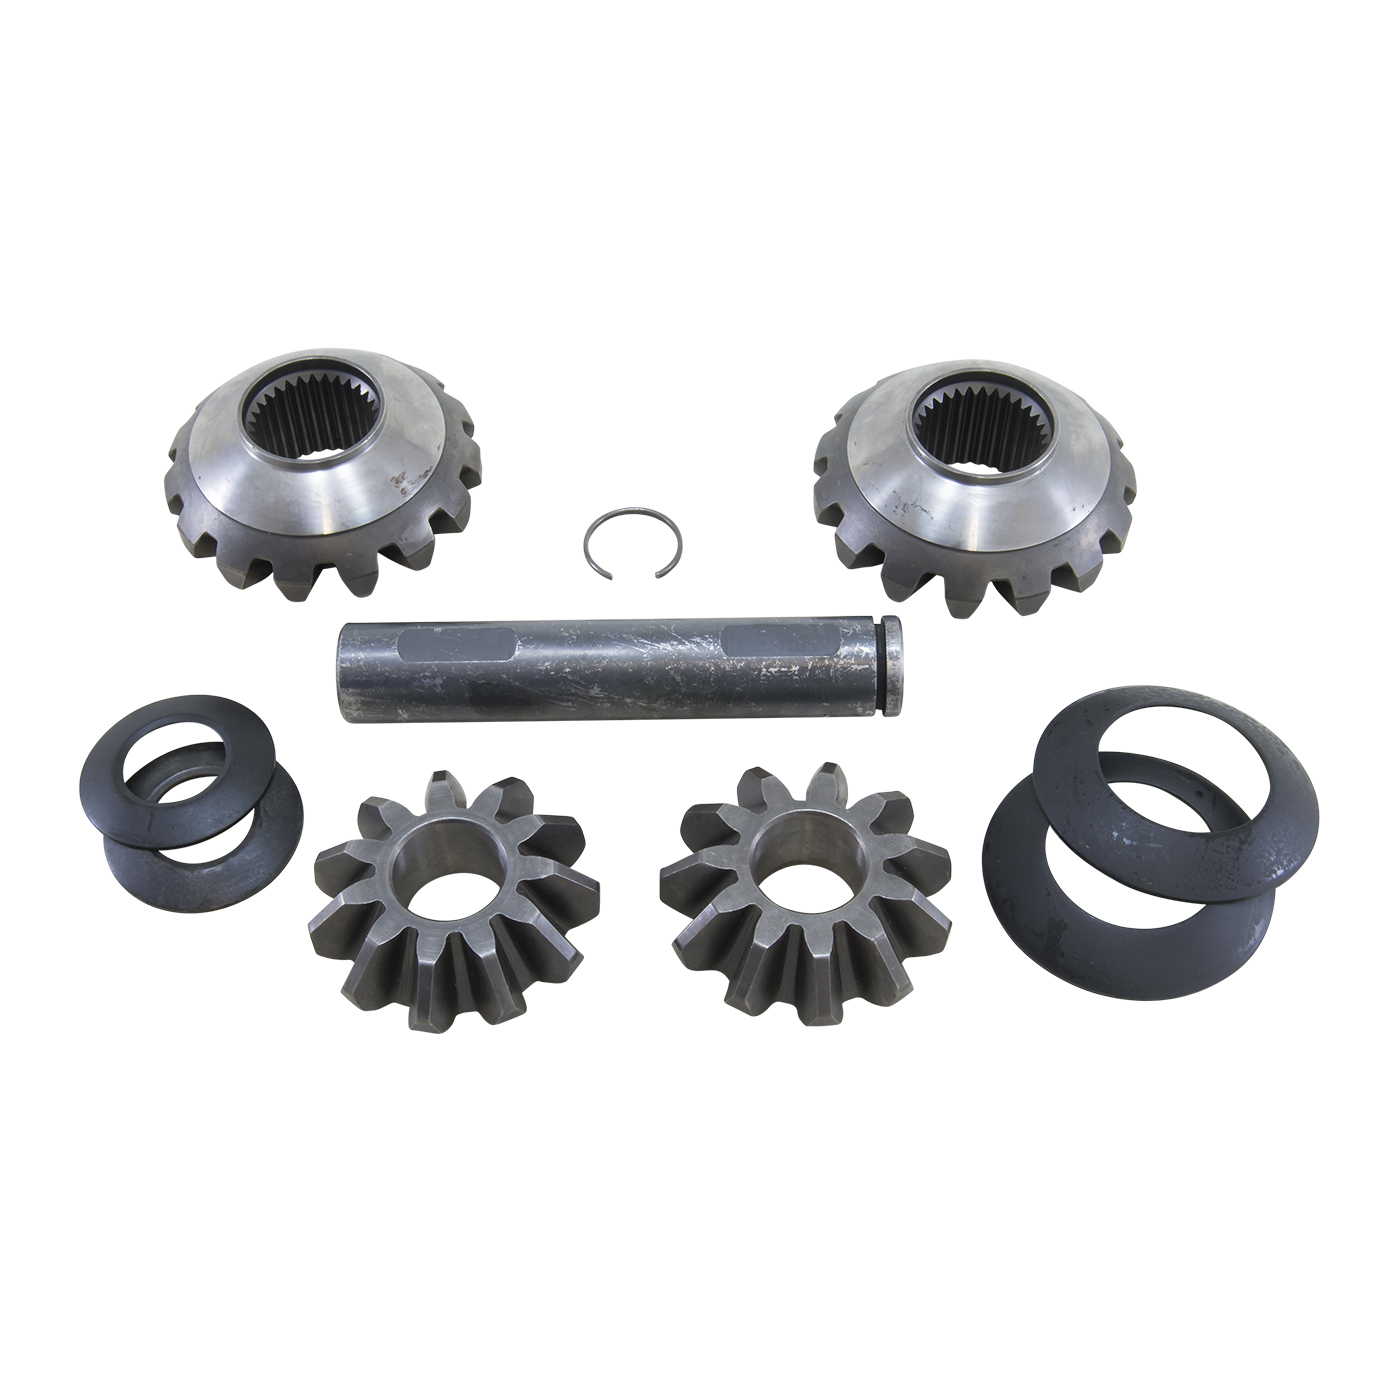 YPKC11.5-S-30 - Yukon standard open spider gear kit for 11.5